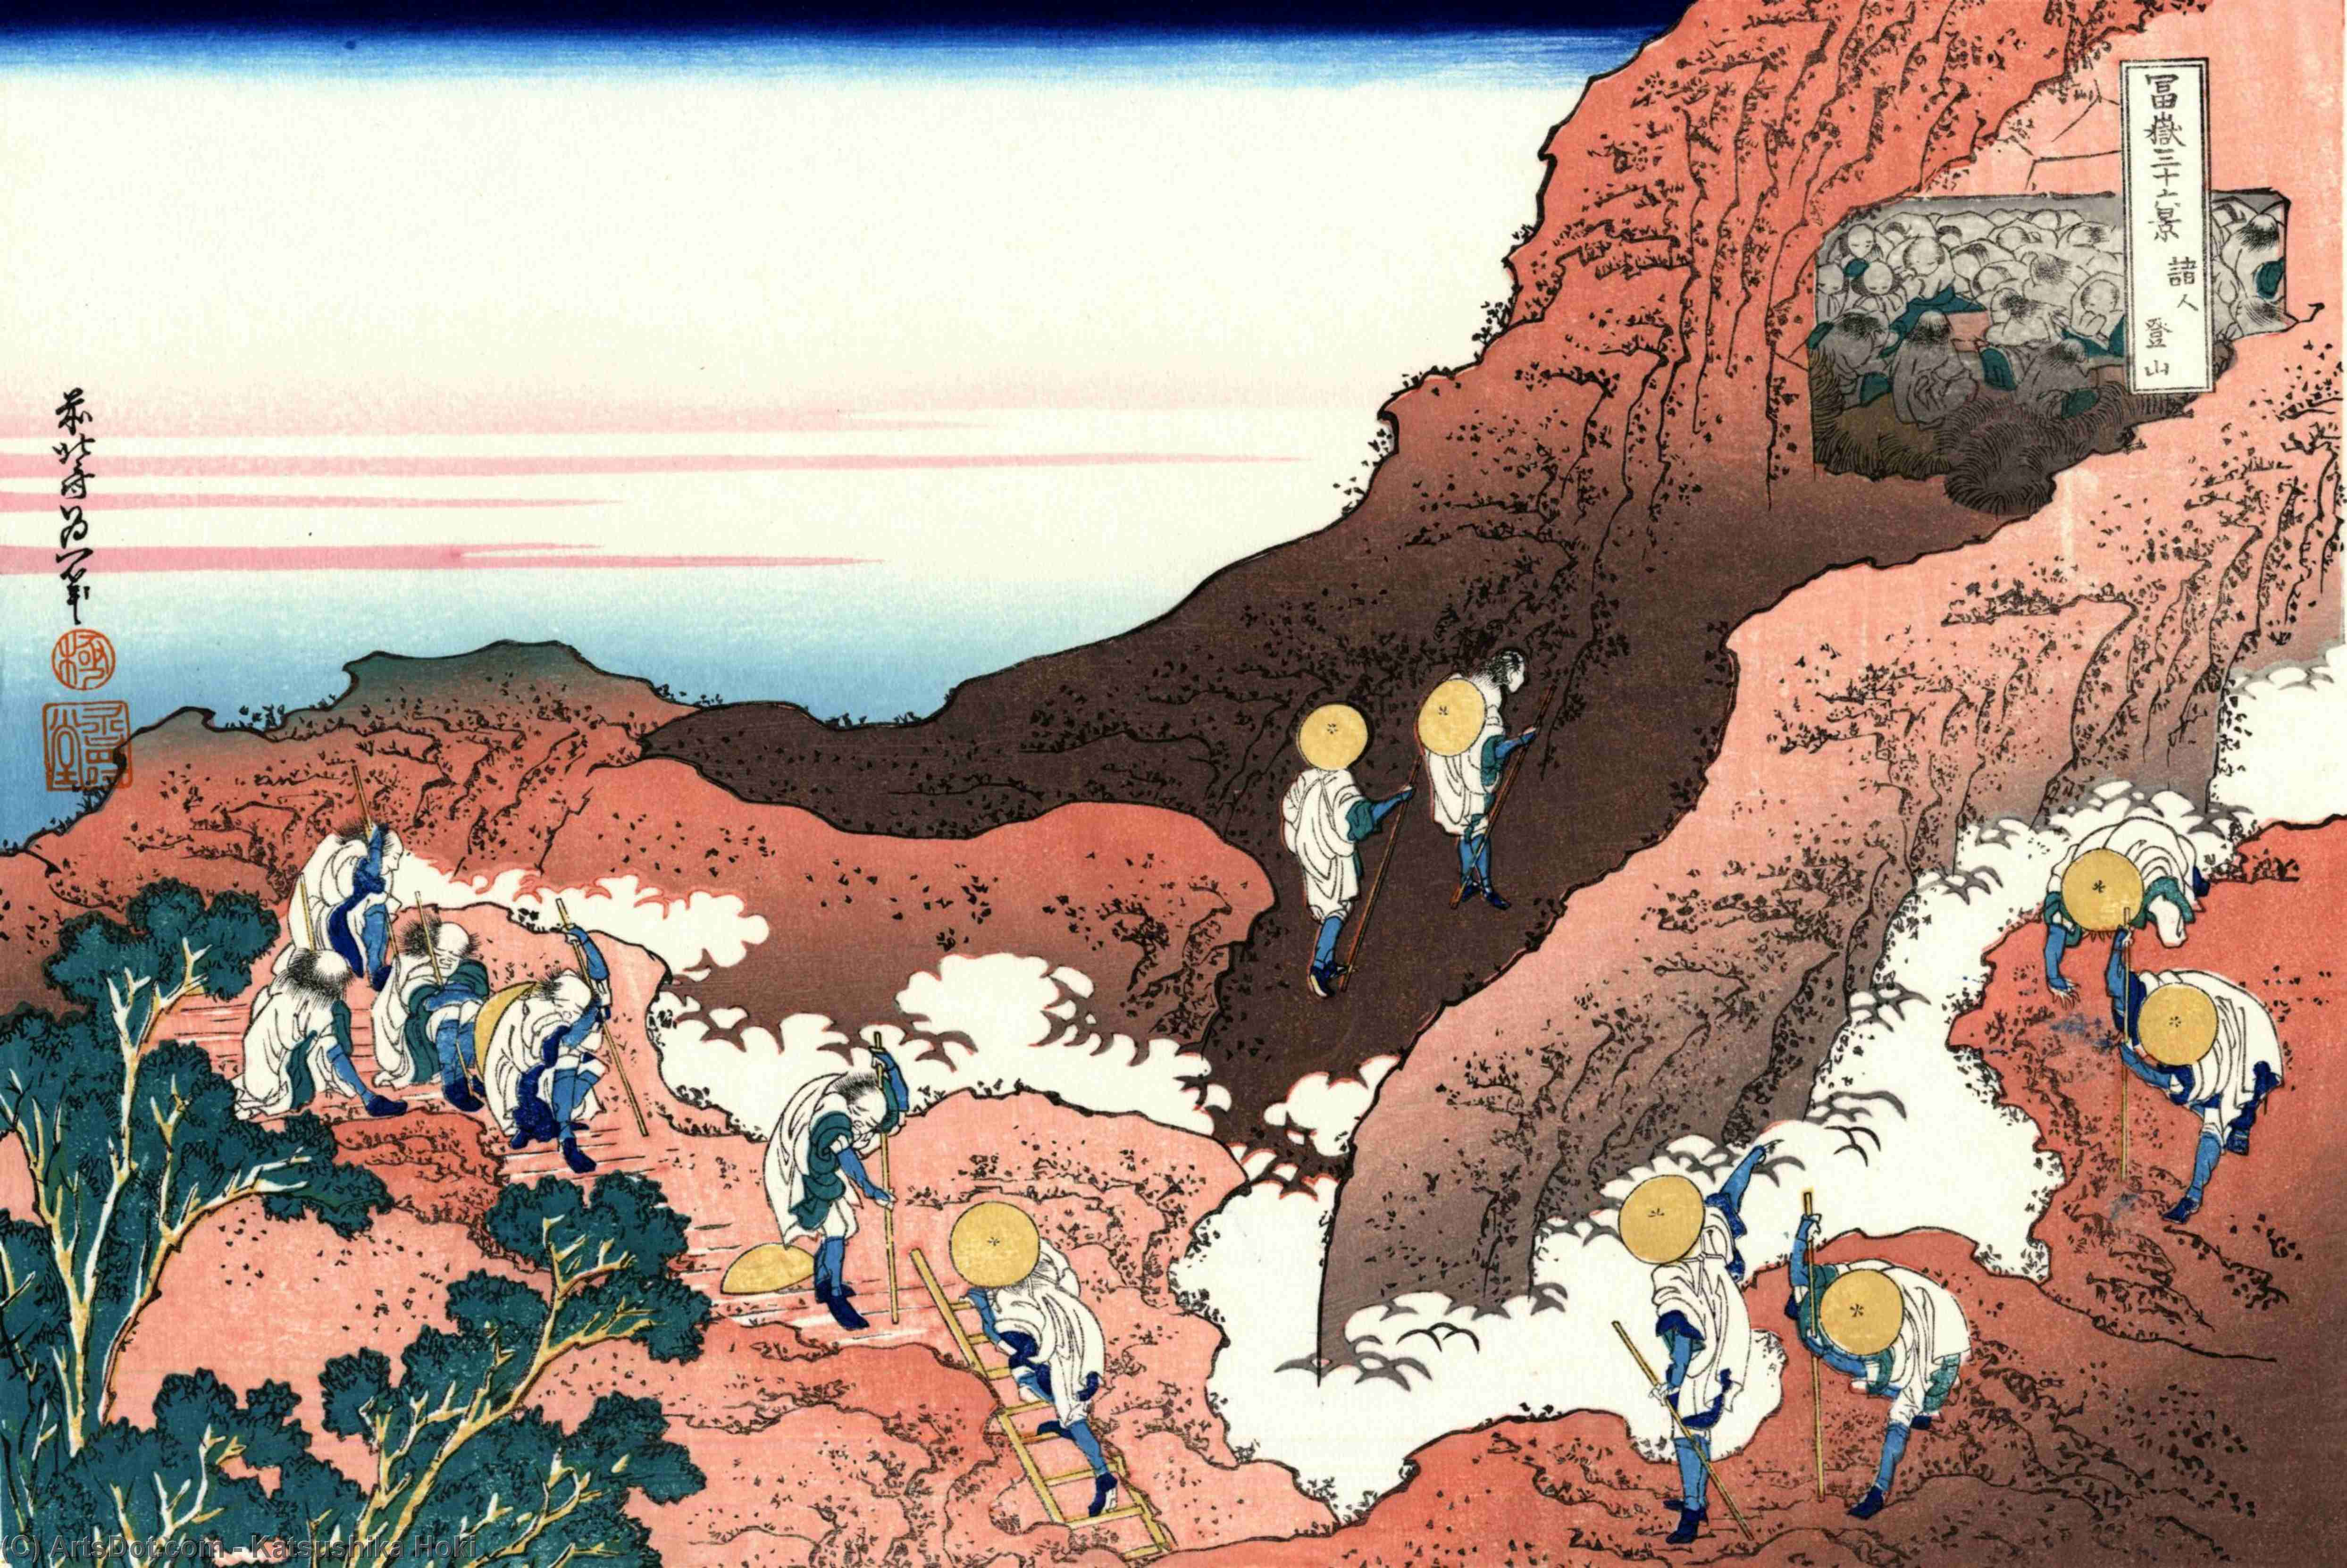 Climbing on Mt. Fuji by Katsushika Hokusai (1760-1849, Japan)